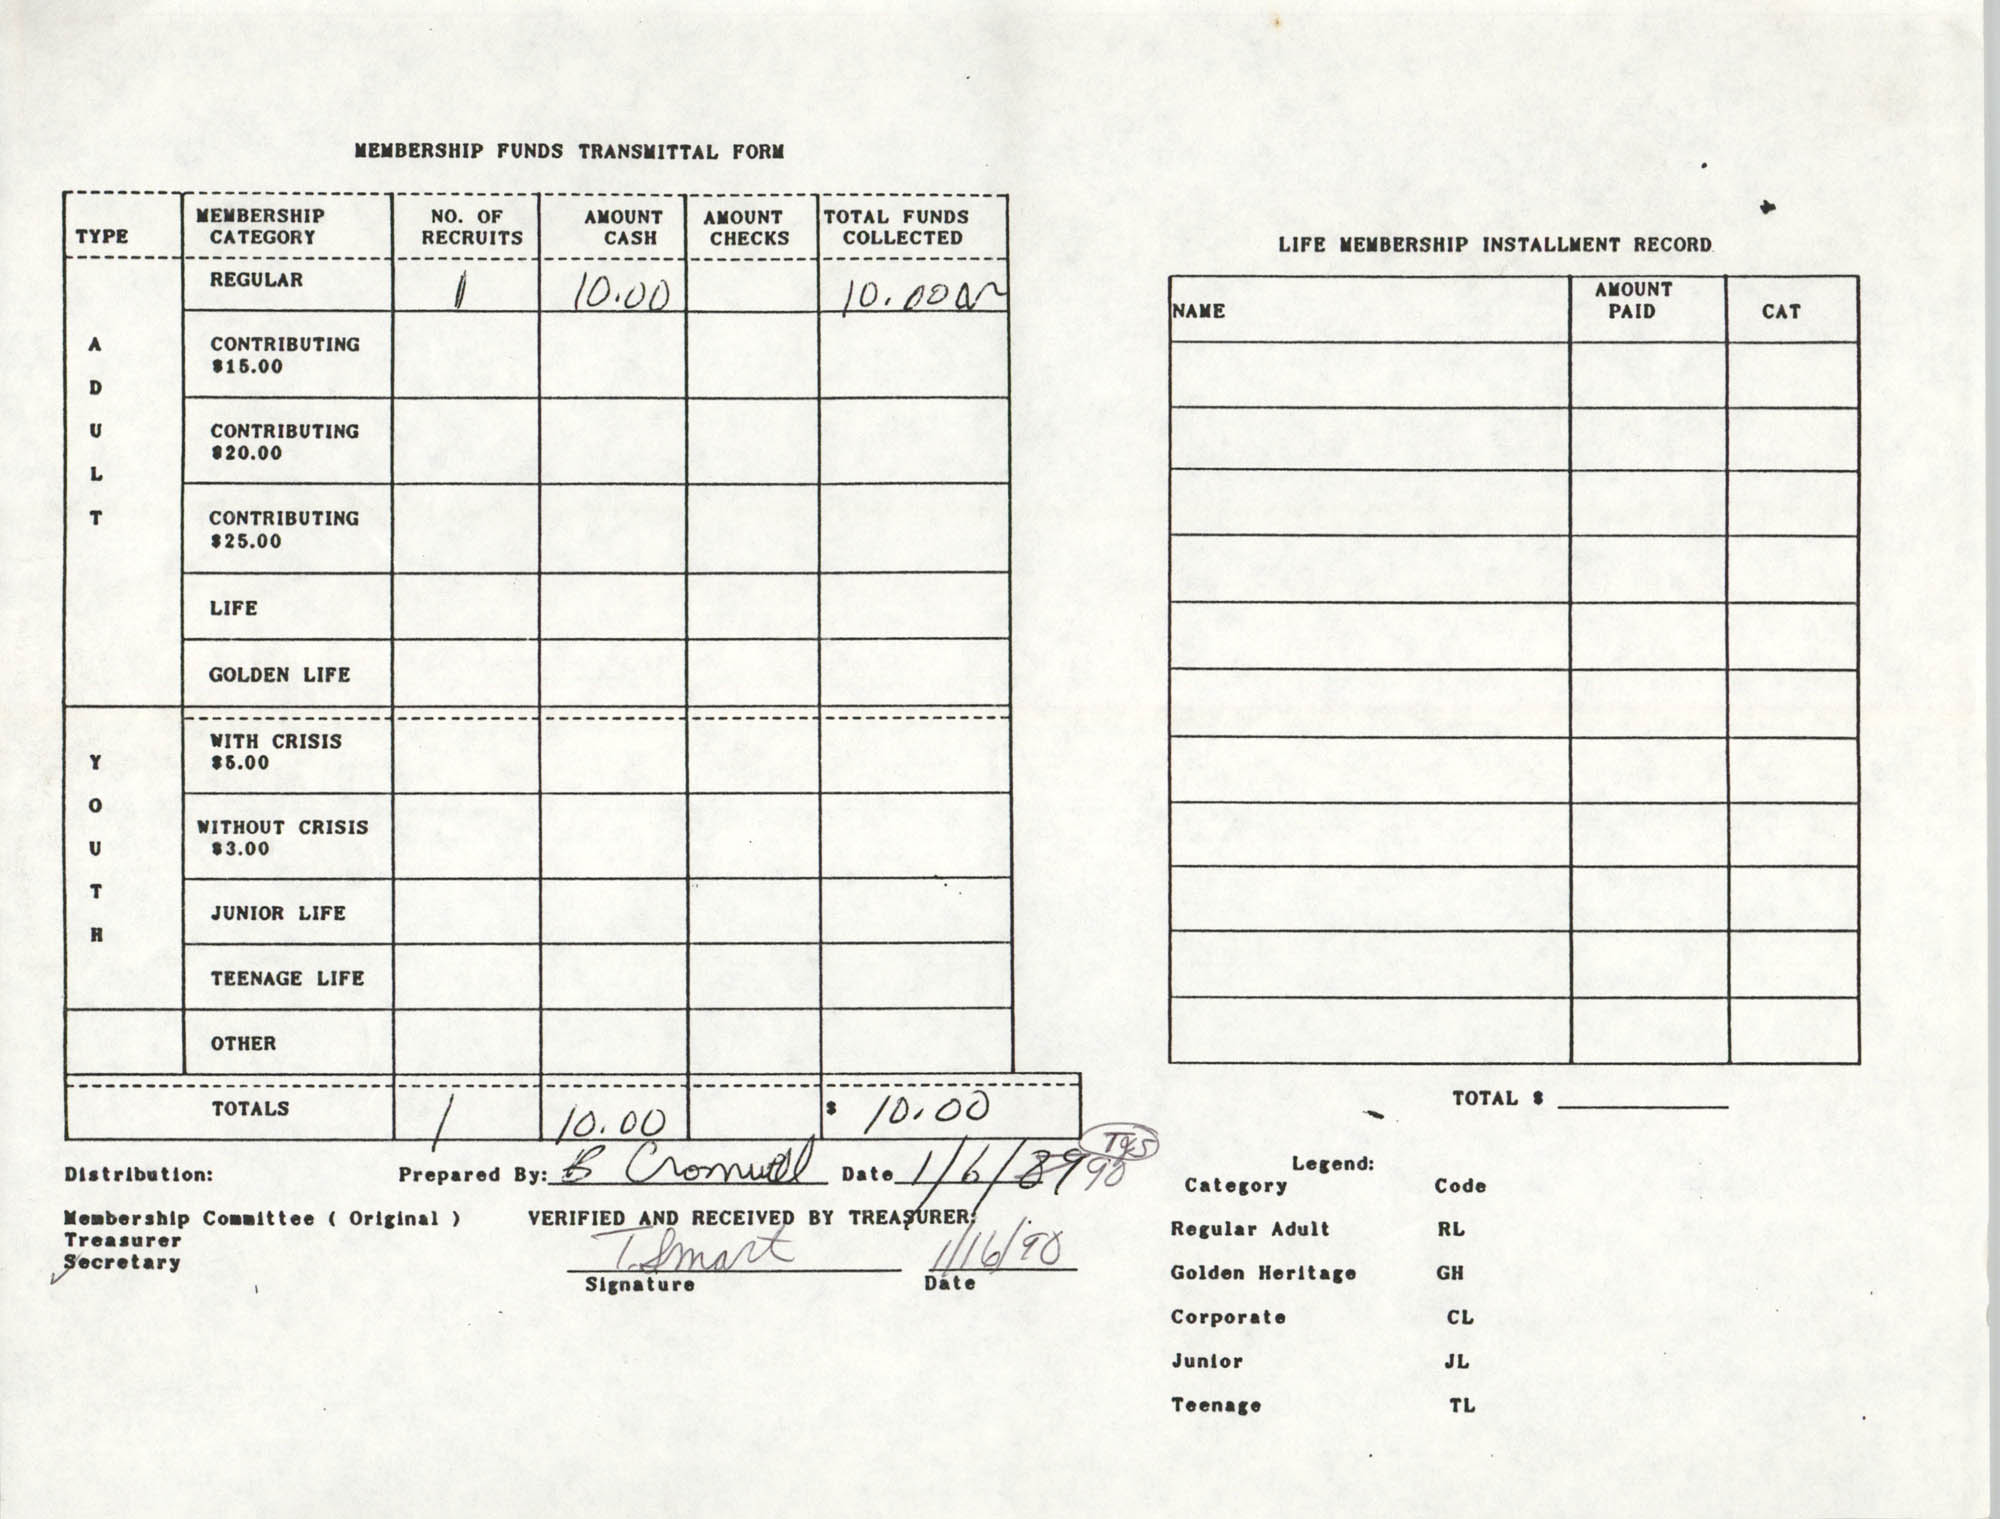 Charleston Branch of the NAACP Funds Transmittal Forms, January 1990, Page 3